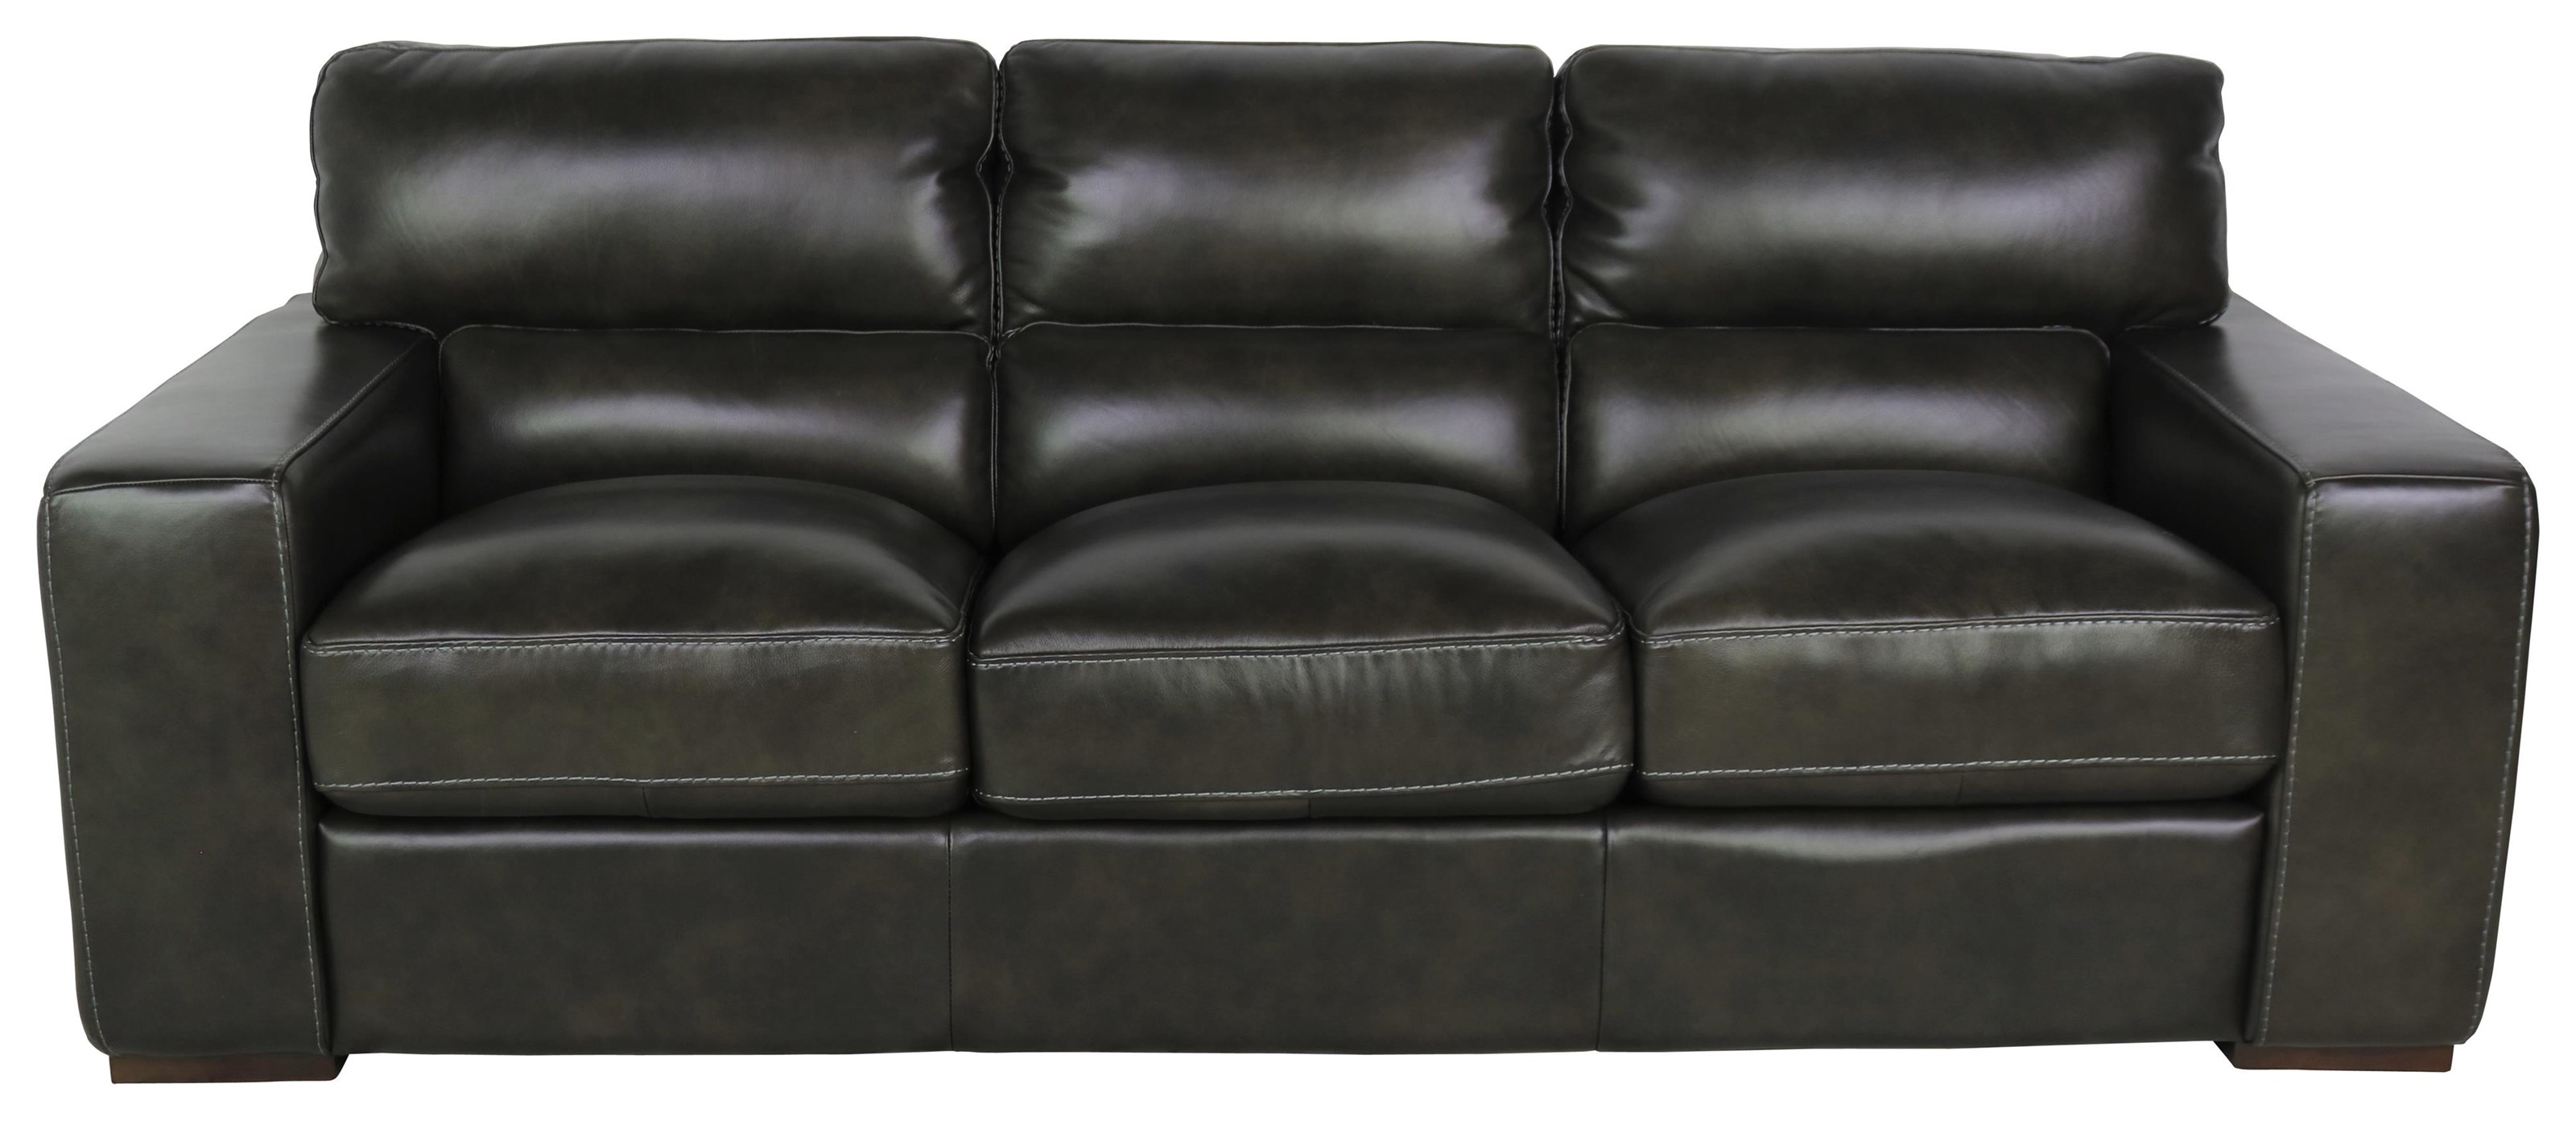 10450 Sofa by Dante Leather at Sprintz Furniture